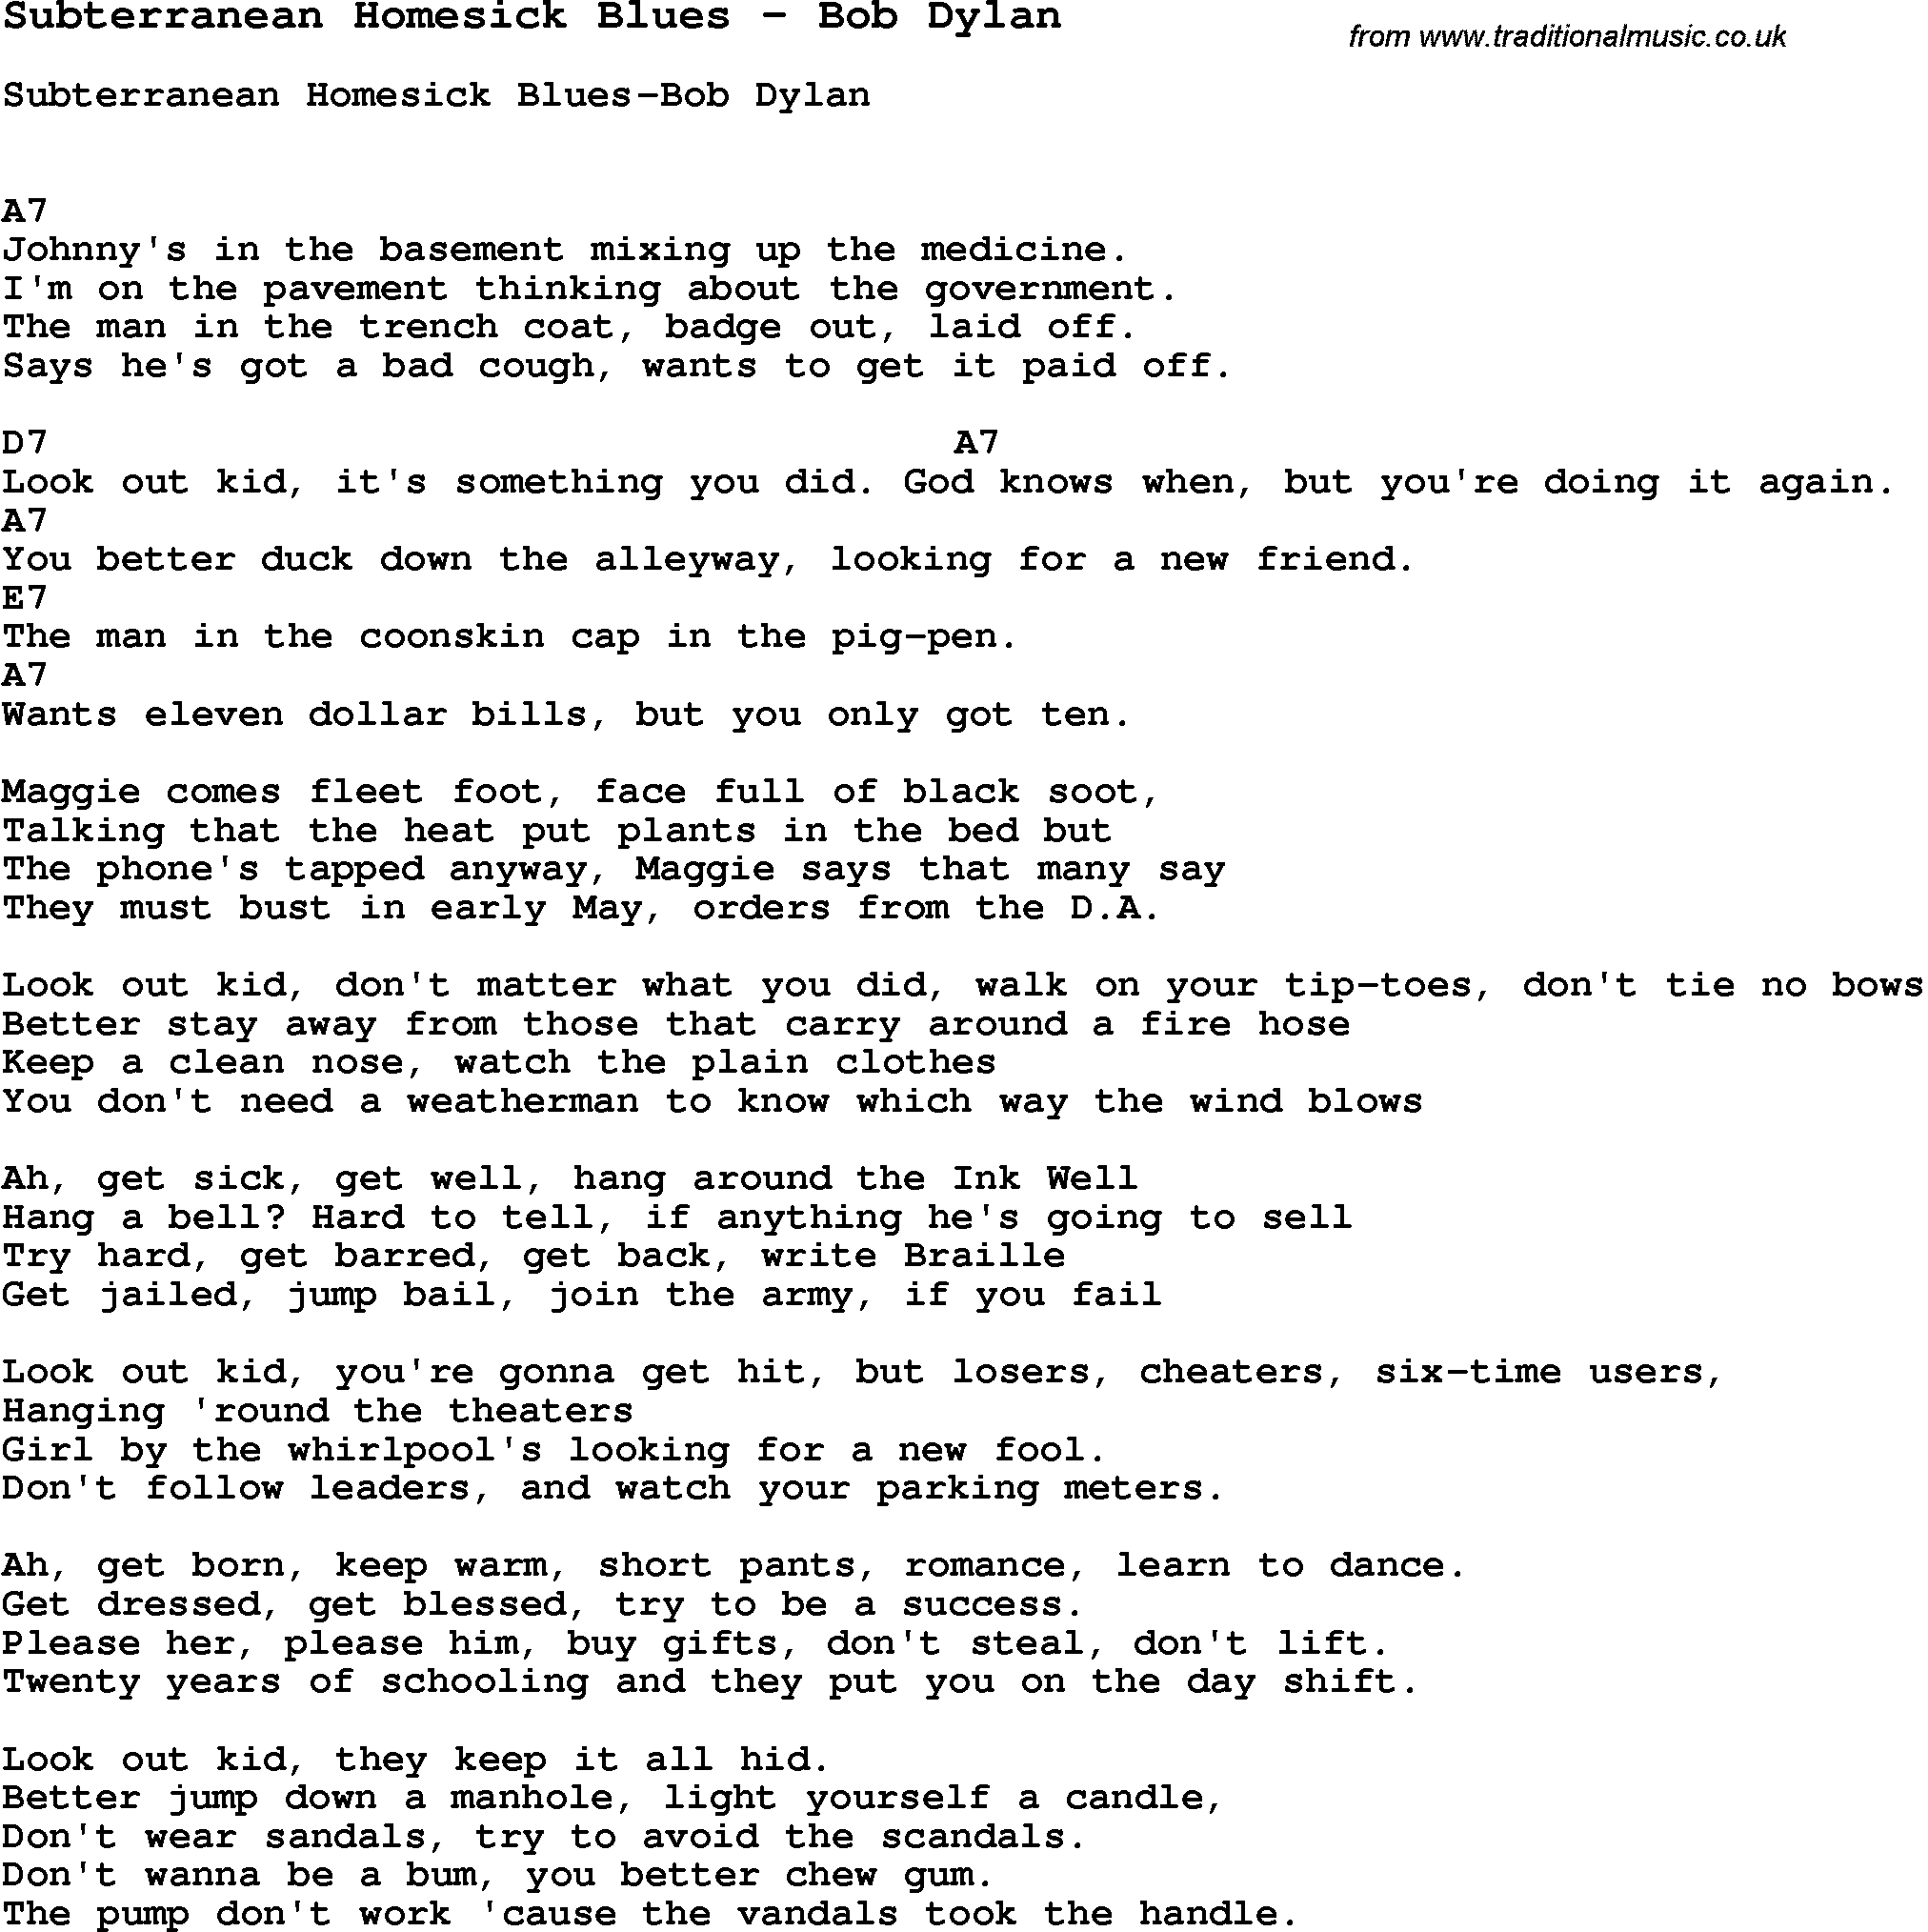 Song subterranean homesick blues by bob dylan song lyric for song subterranean homesick blues by bob dylan with lyrics for vocal performance and accompaniment chords hexwebz Choice Image